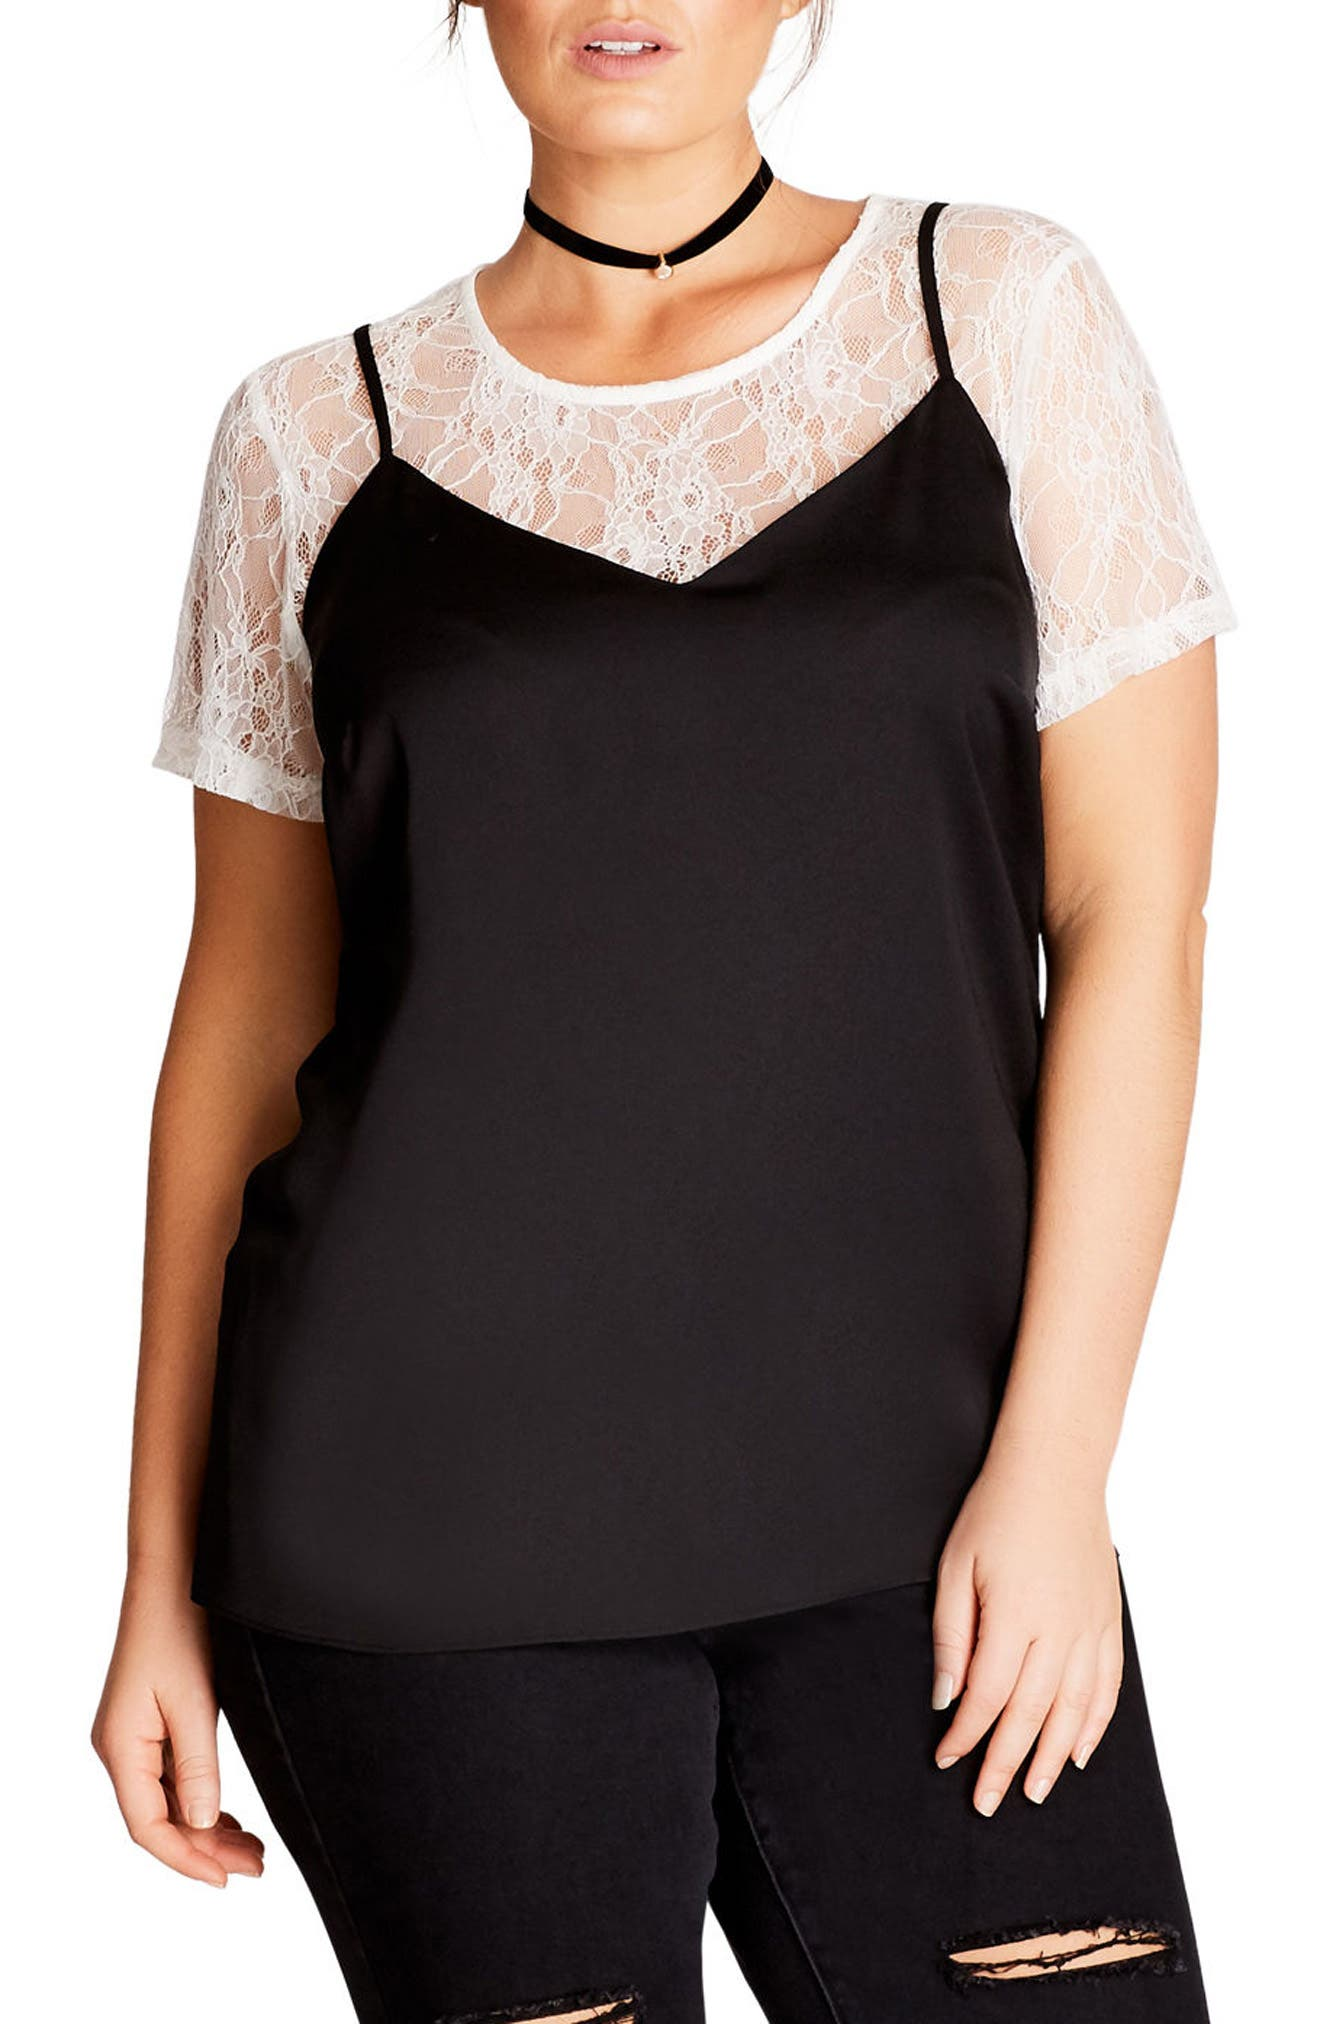 Alternate Image 1 Selected - City Chic Lace Top (Plus Size)